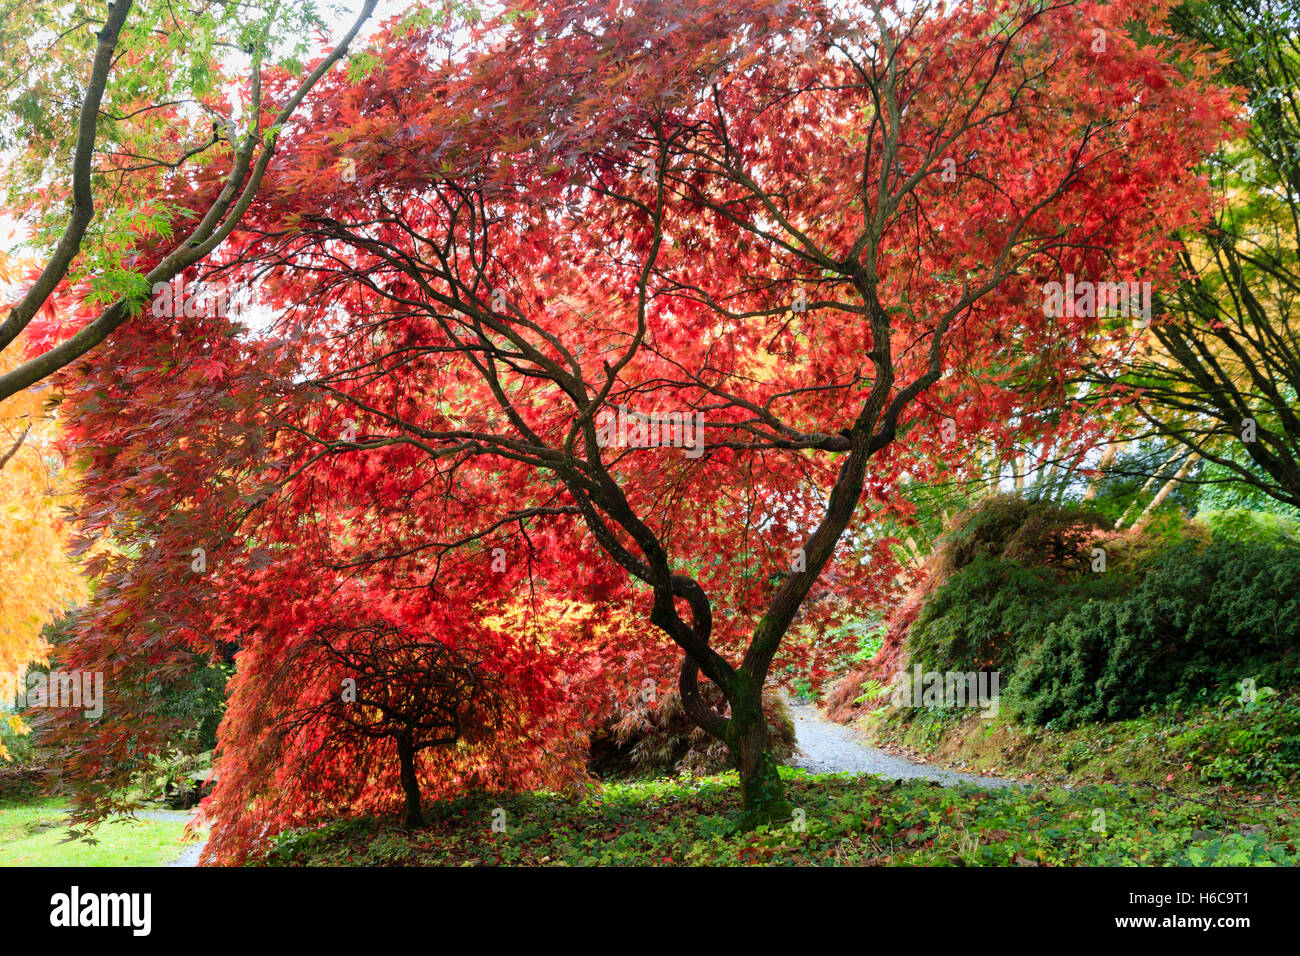 backlit-red-autumn-foliage-of-two-japanese-maples-acer-palmatum-varieties-H6C9T1.jpg